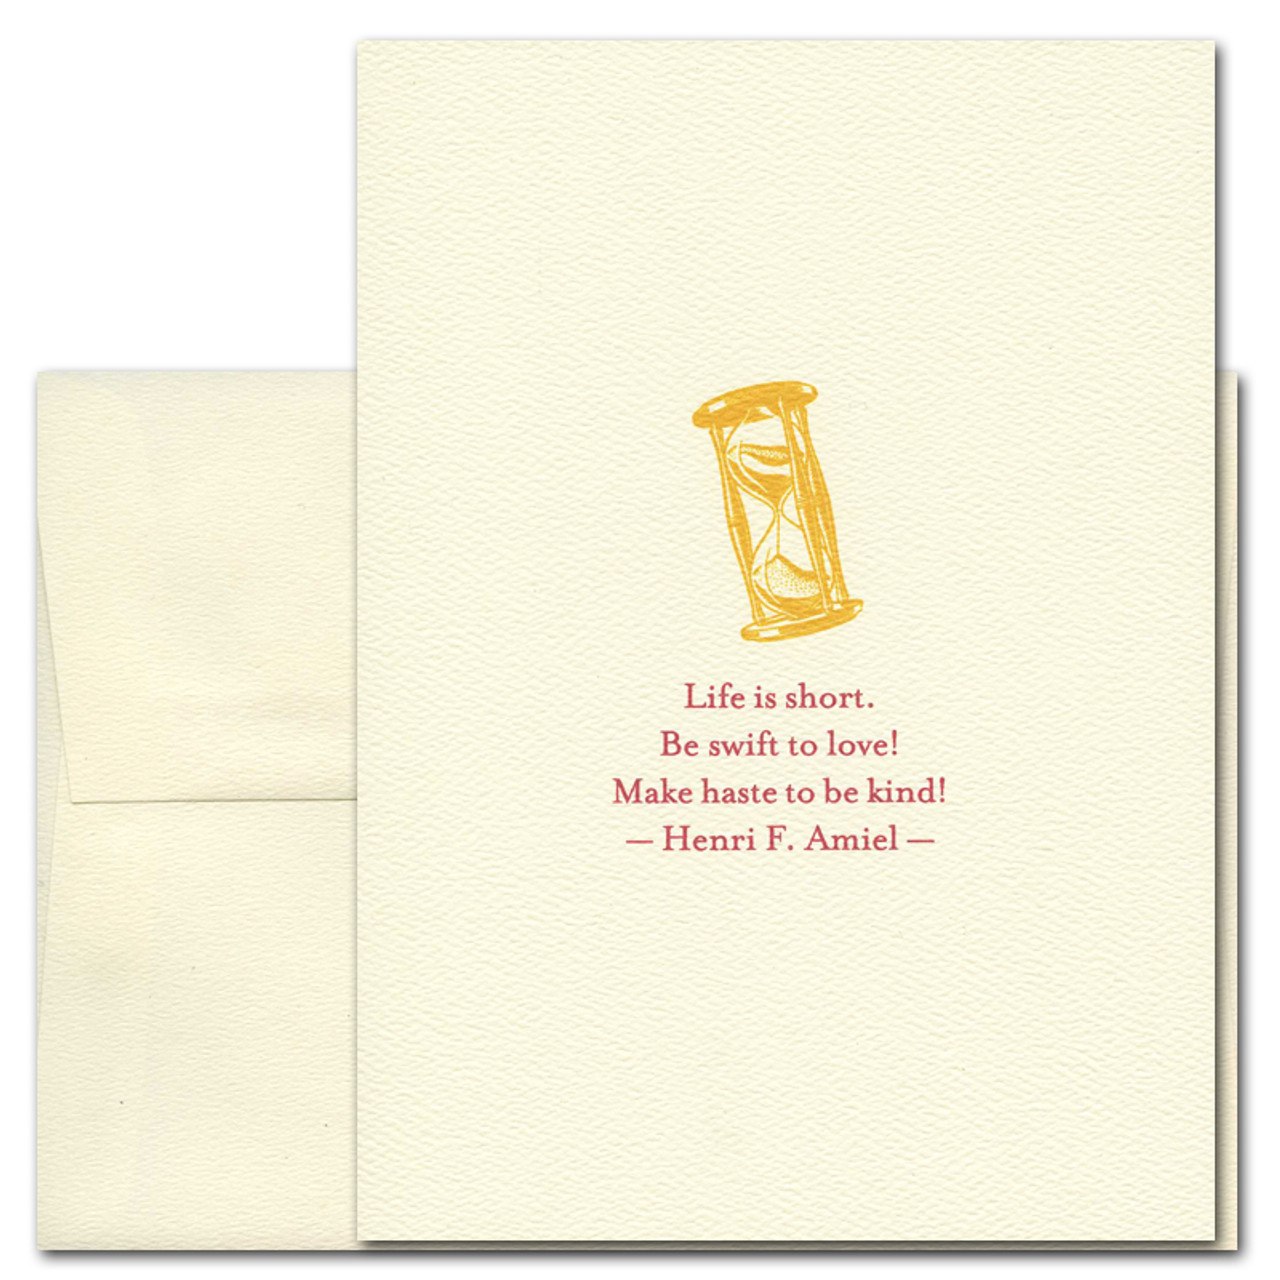 "Quotation Card ""Life is Short: Amiel"" Cover shows golden old fashioned style hourglass with a quote from Henri F. Amiel reading: ""Life is short. Be swift to love! Make haste to be kind!"""